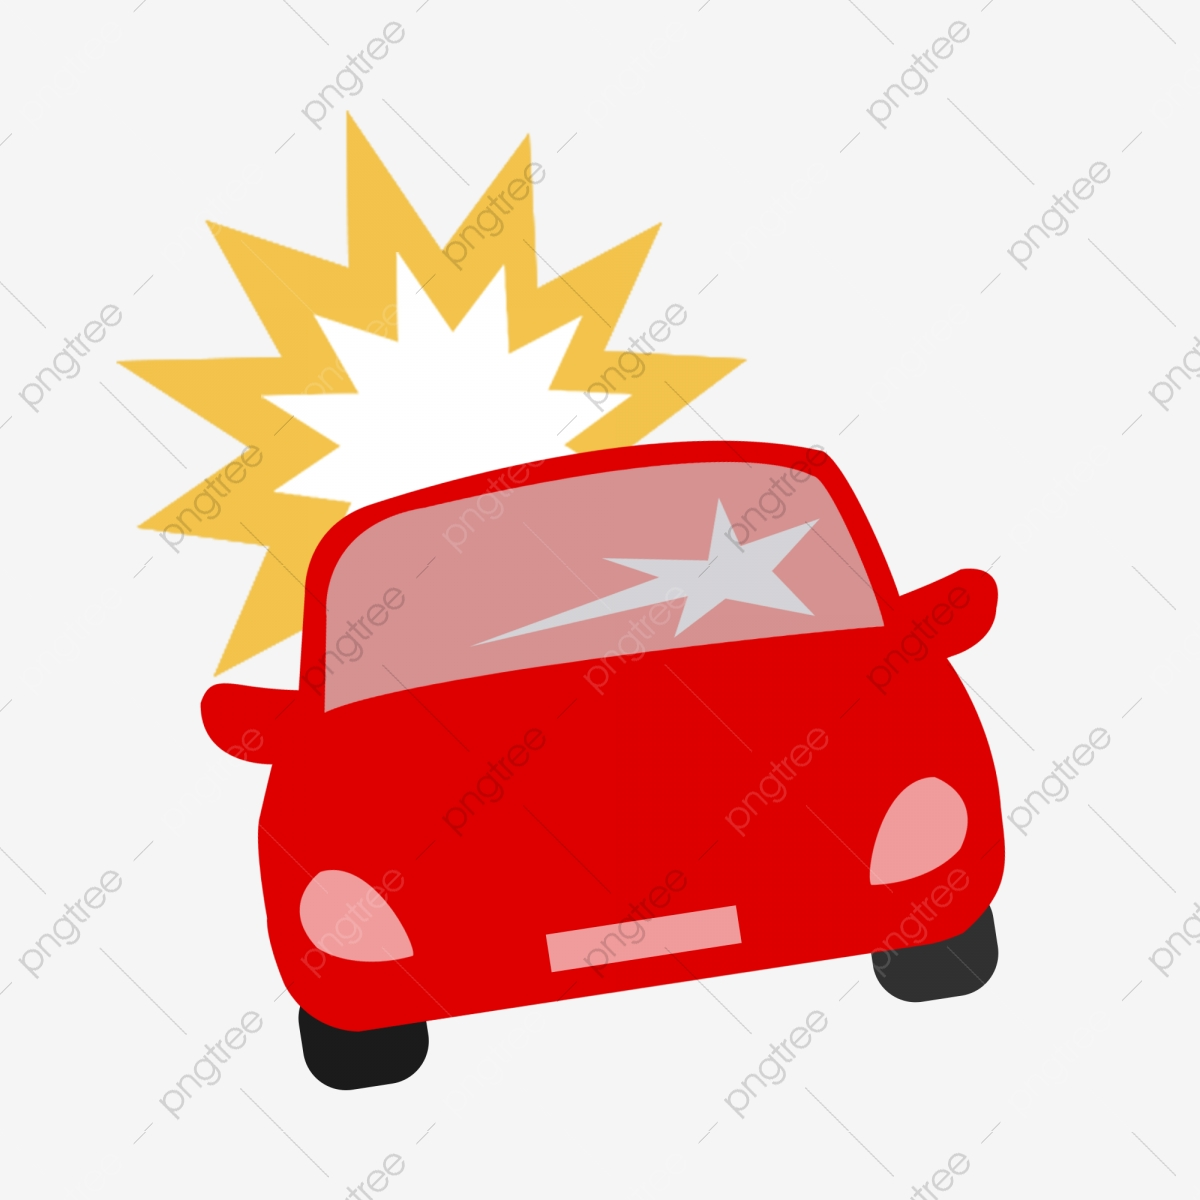 Car Crash Picture, Car Accident, Damage, Traffic Safety PNG.